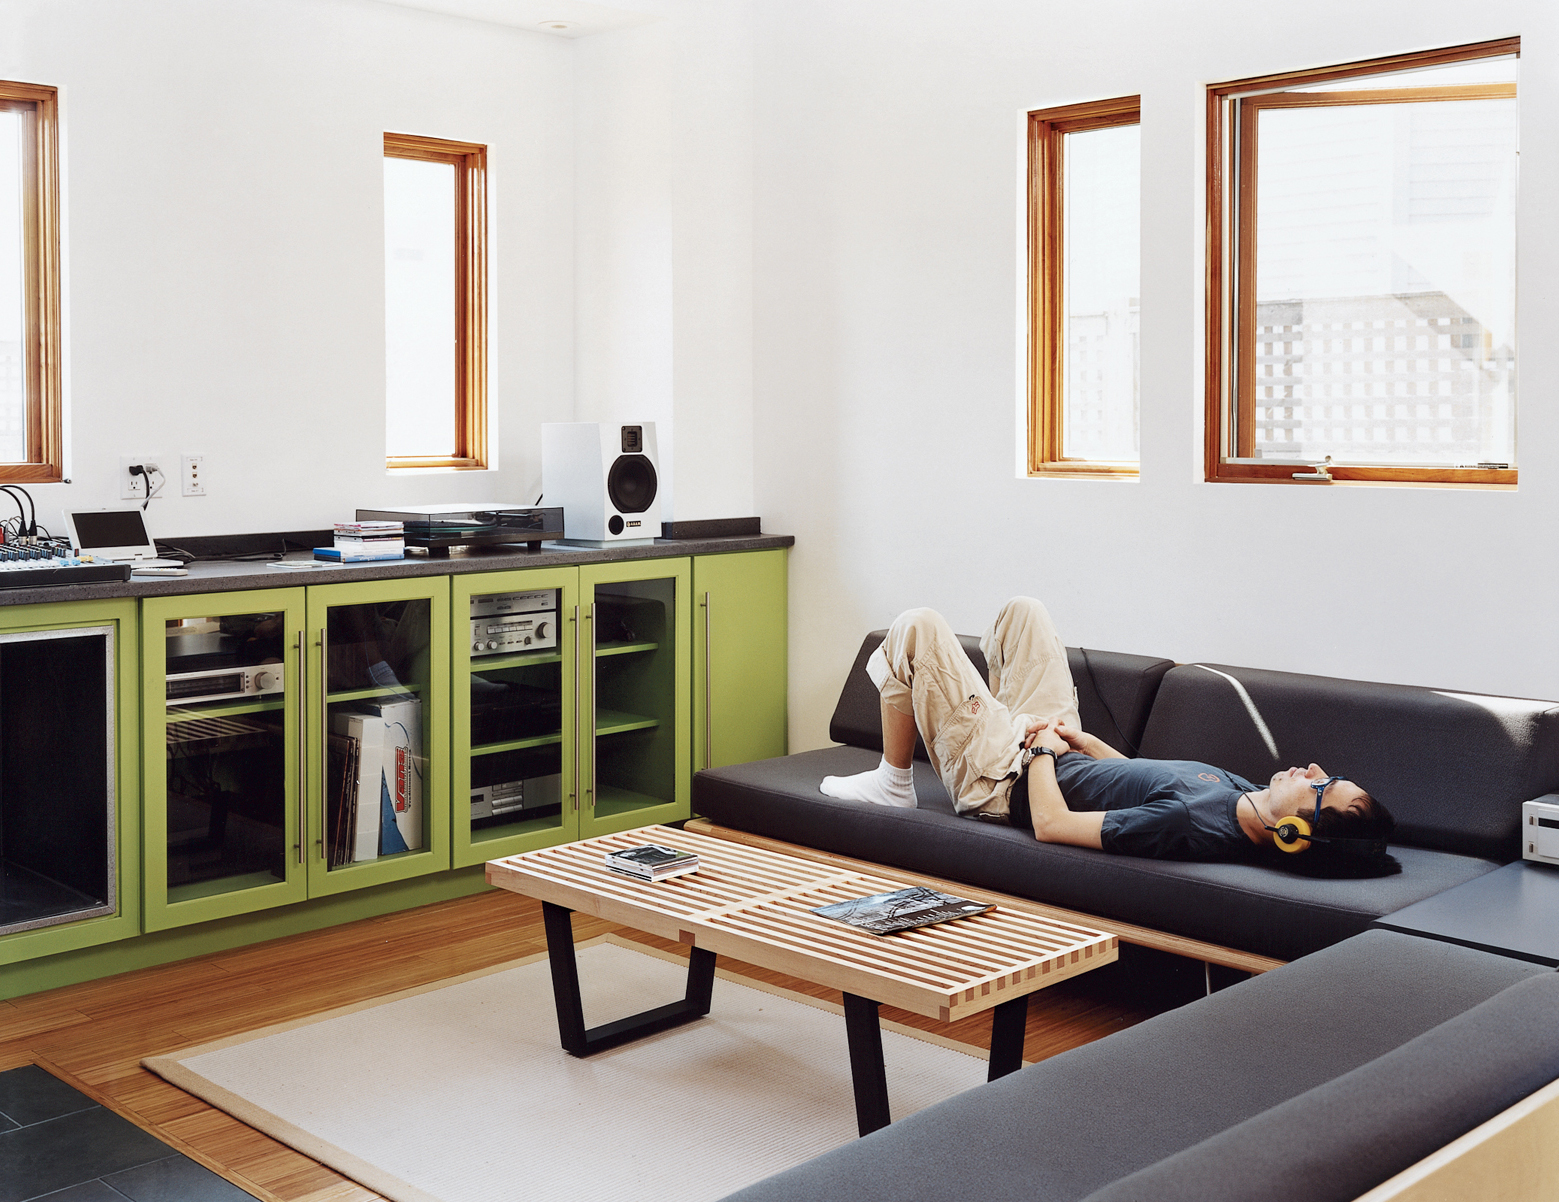 """Andy Hong tunes out with his hi-fi system in the living area of his ground floor. The big room contains a kitchen, a washer-dryer, and ample work surfaces. """"Since I travel a lot,"""" he says, """"I really look forward to hanging out in the big room, catching up"""